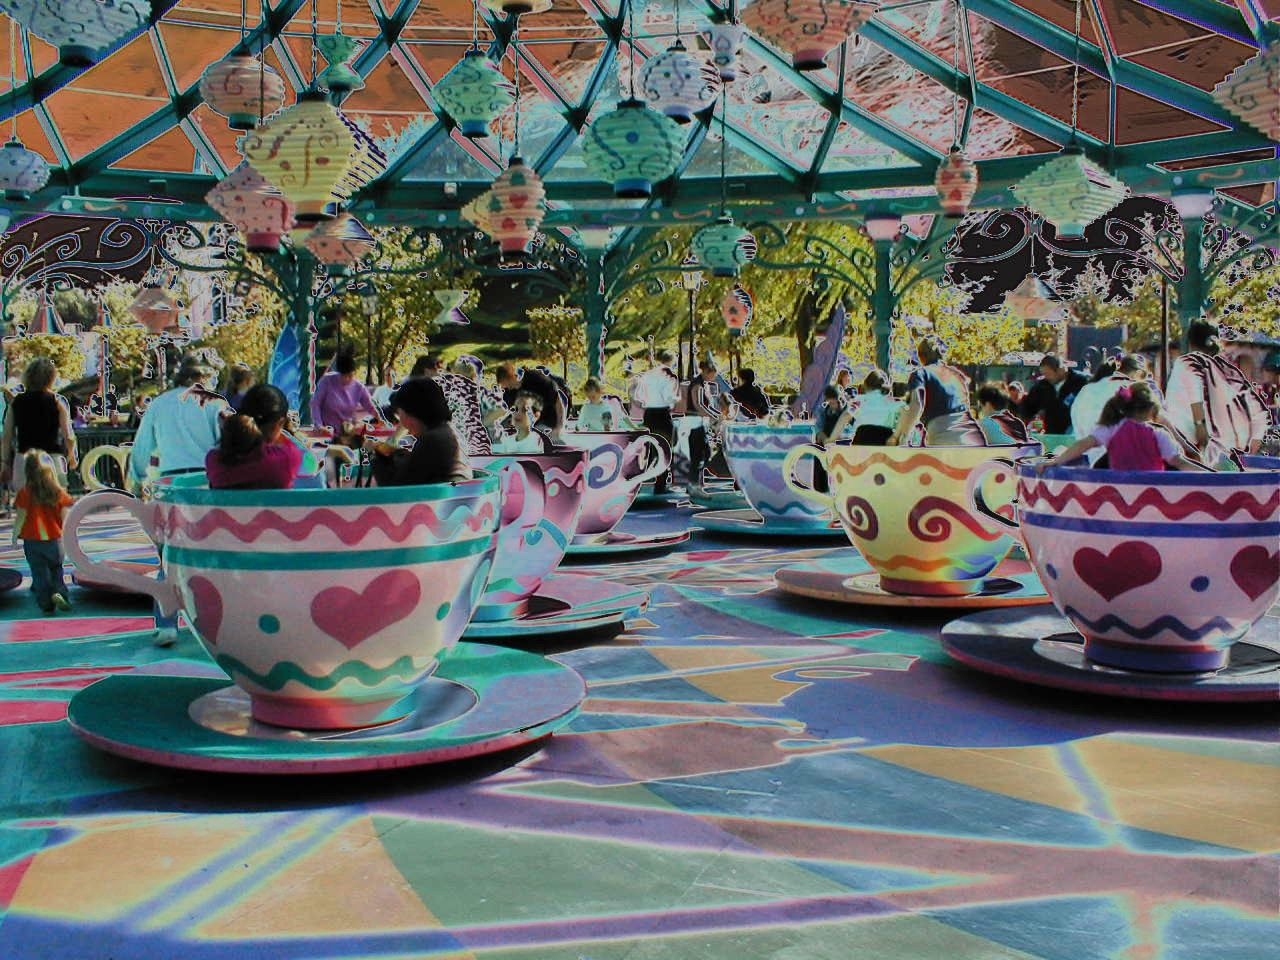 Party in a Disney teacup | Time in Paris | Pinterest | Teacup